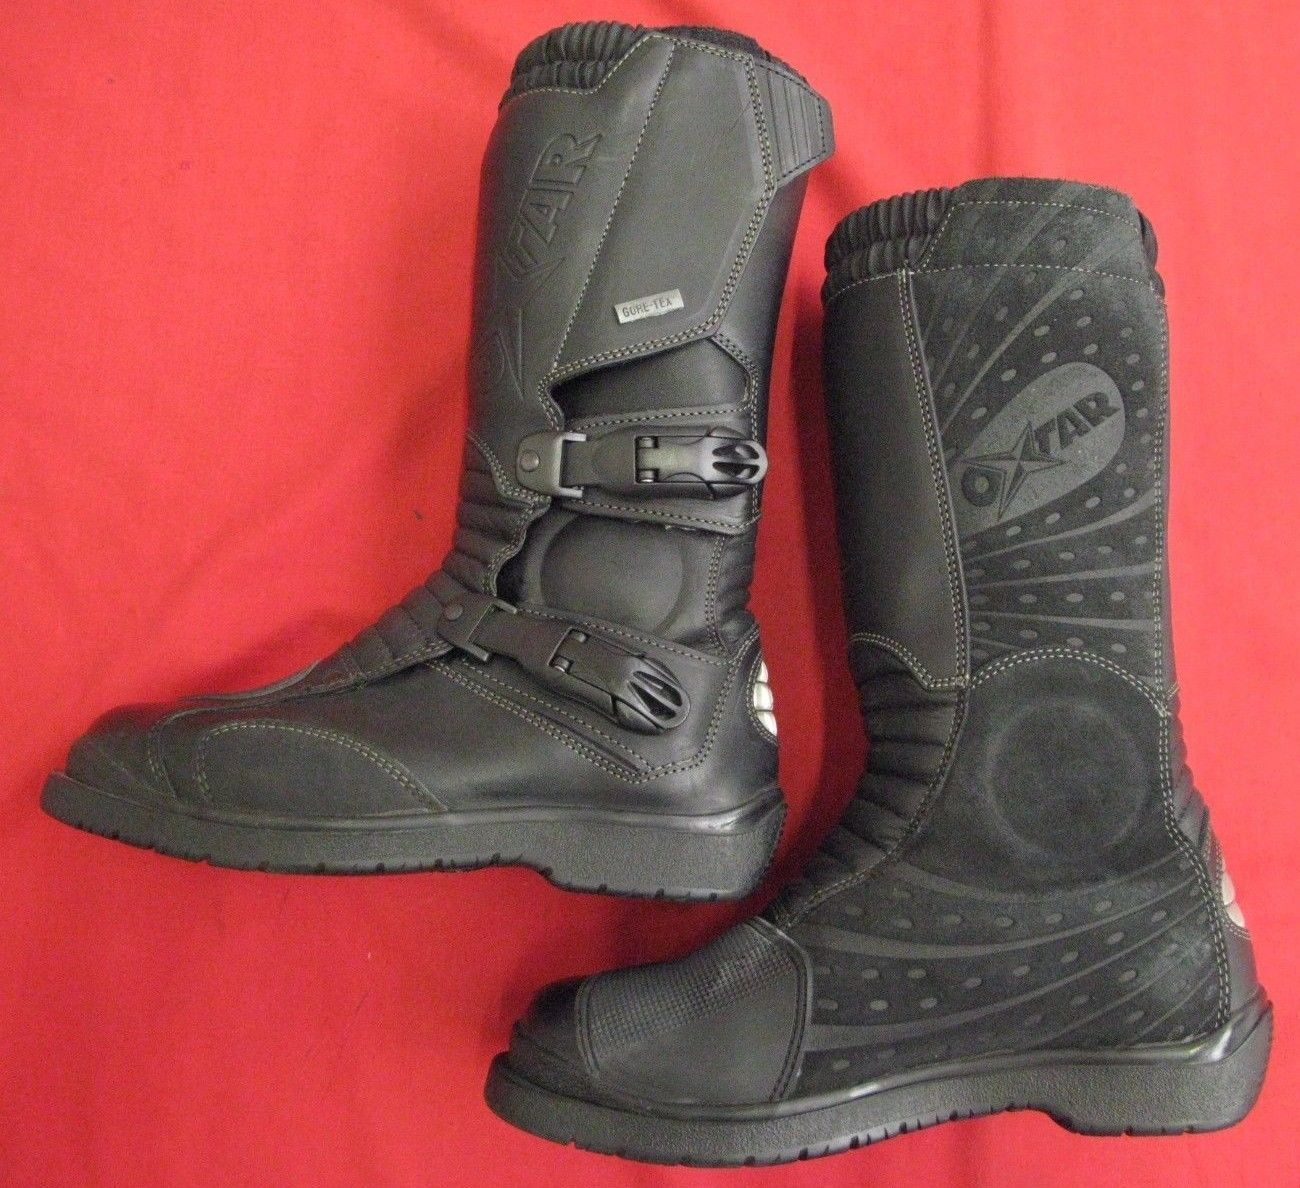 INFINITY GORETEX LEATHER ADVENTURE MOTORCYCLE BOOTS EU 38 UK 5